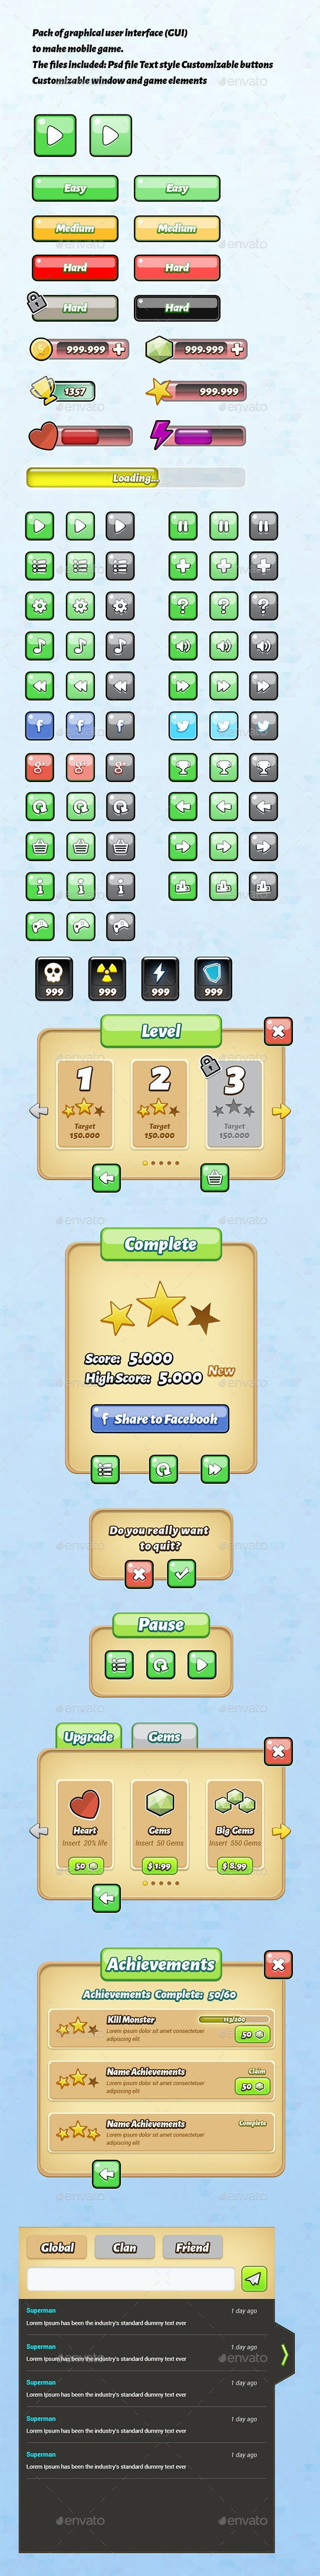 Mobile Game Gui - Vol 1 - User Interfaces Web Elements